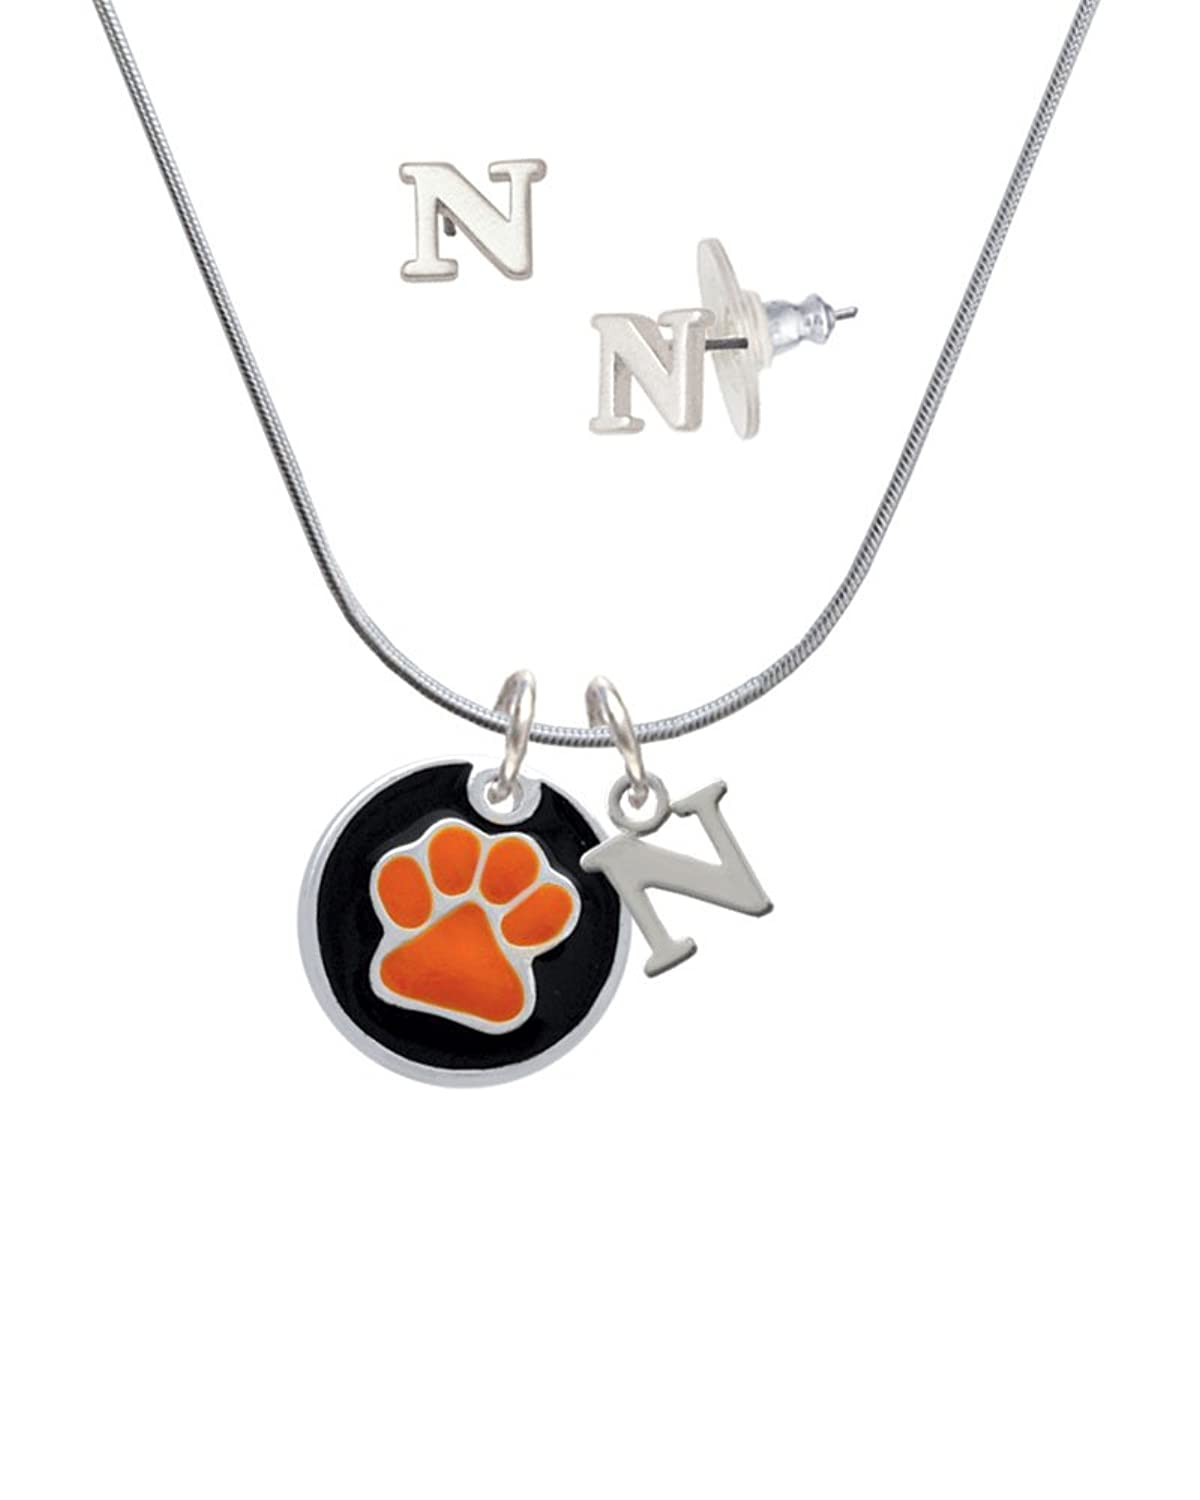 3/4'' Orange Paw in Black Circle - N Initial Charm Necklace and Stud Earrings Jewelry Set